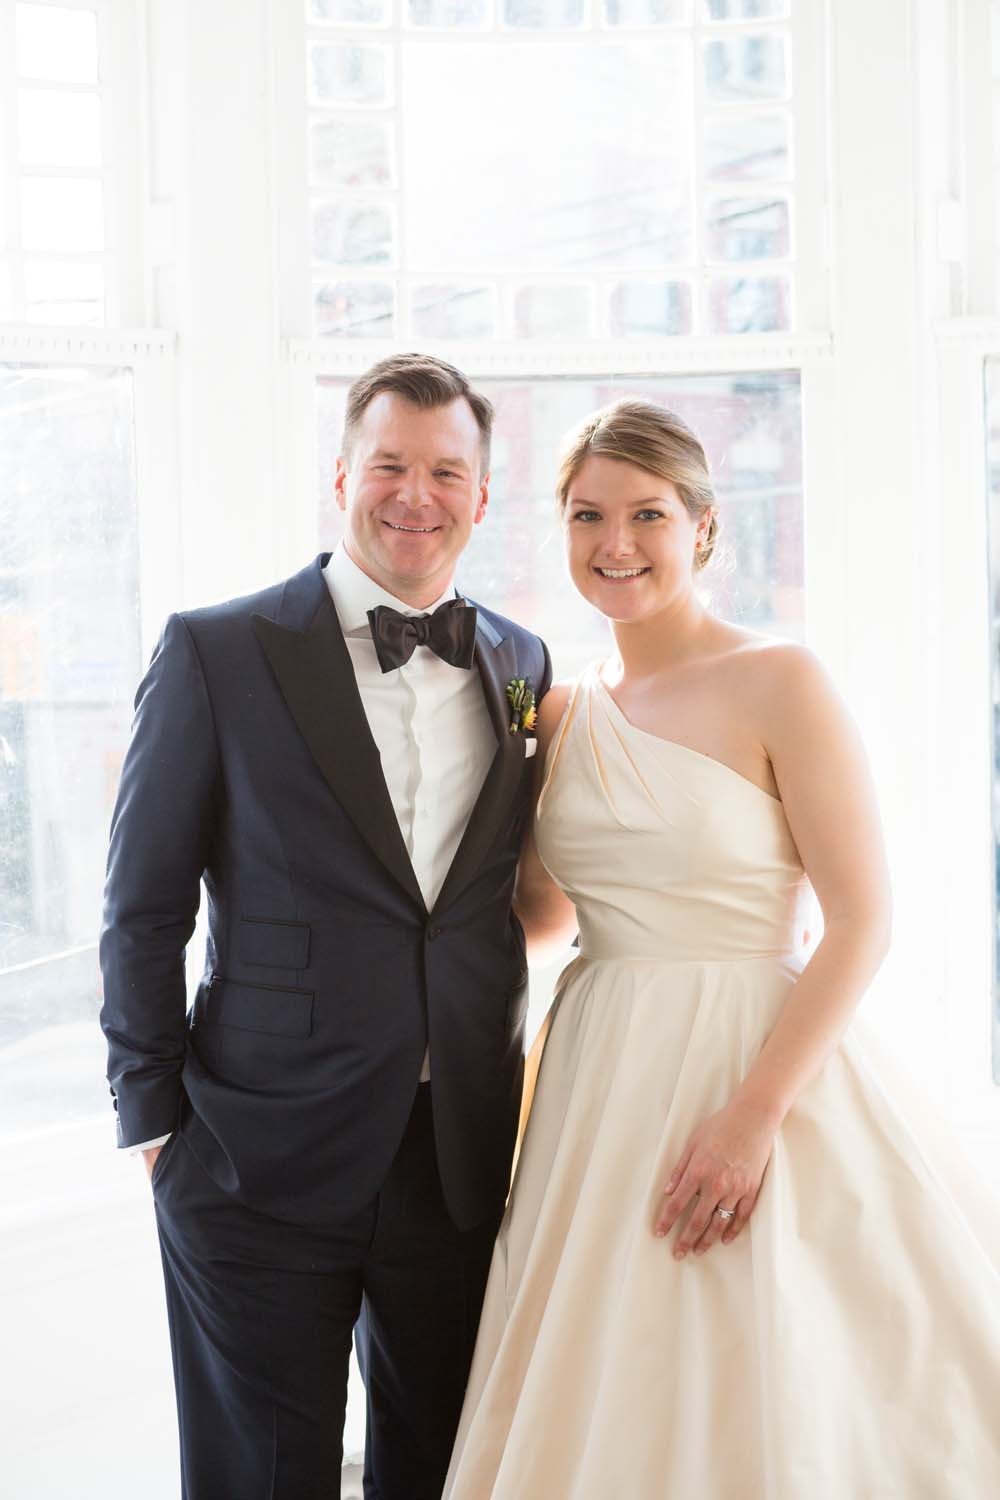 A Modern Wedding At The Great Hall In Toronto - couple